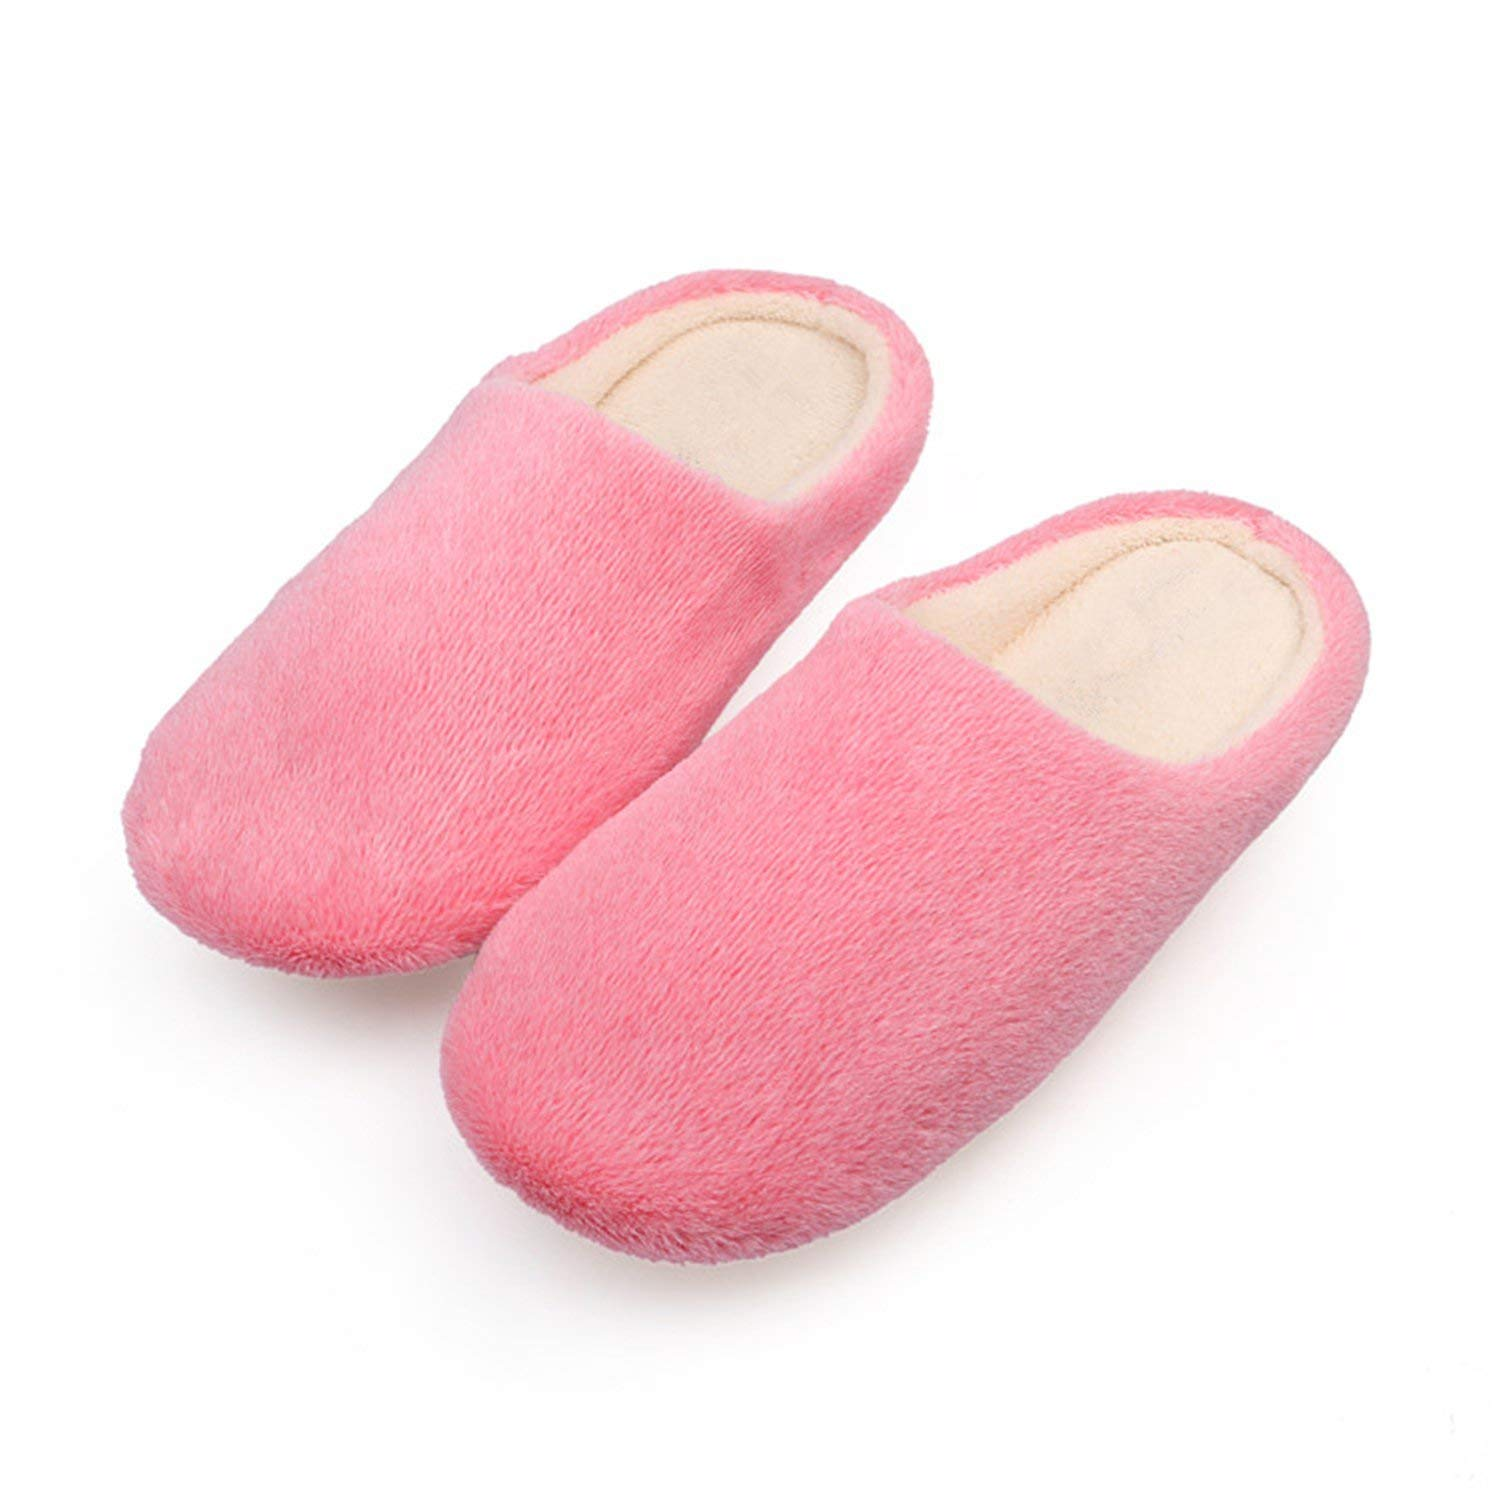 Jwhui Soft Plush Cotton Cute Slippers Shoes Non-Slip Floor Indoor House Home Furry Slippers Women Shoes for Bedroom